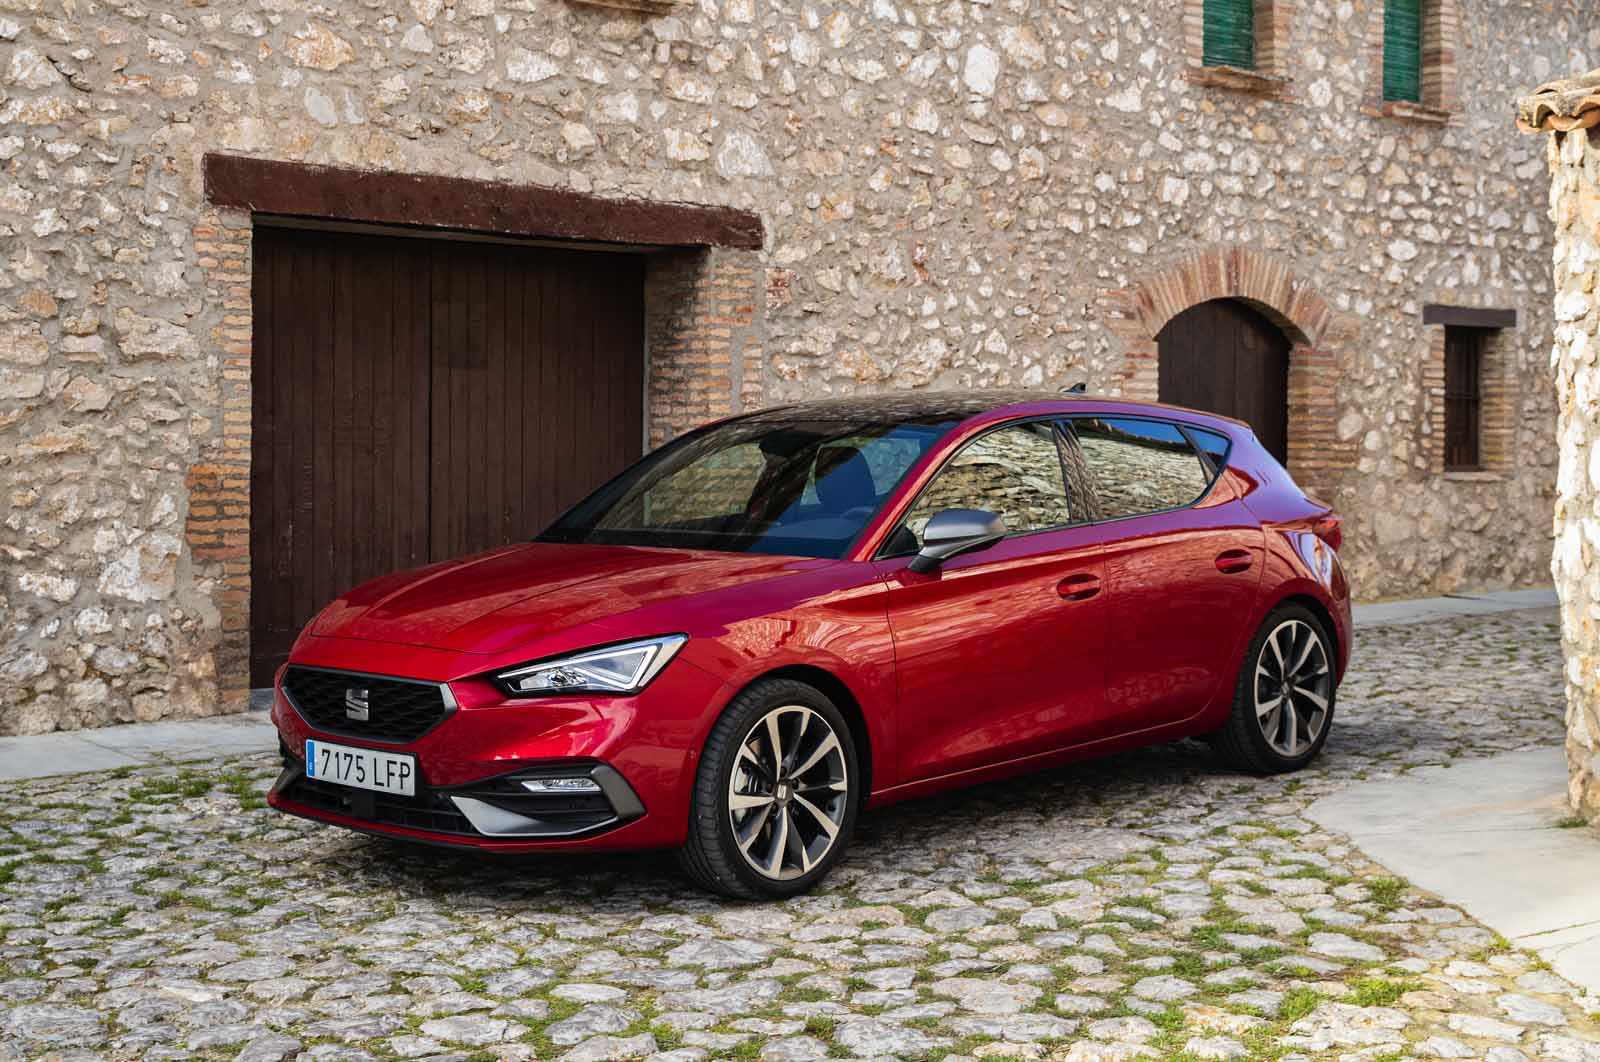 New 2020 Seat Leon New Images Released Ahead Of UK Launch